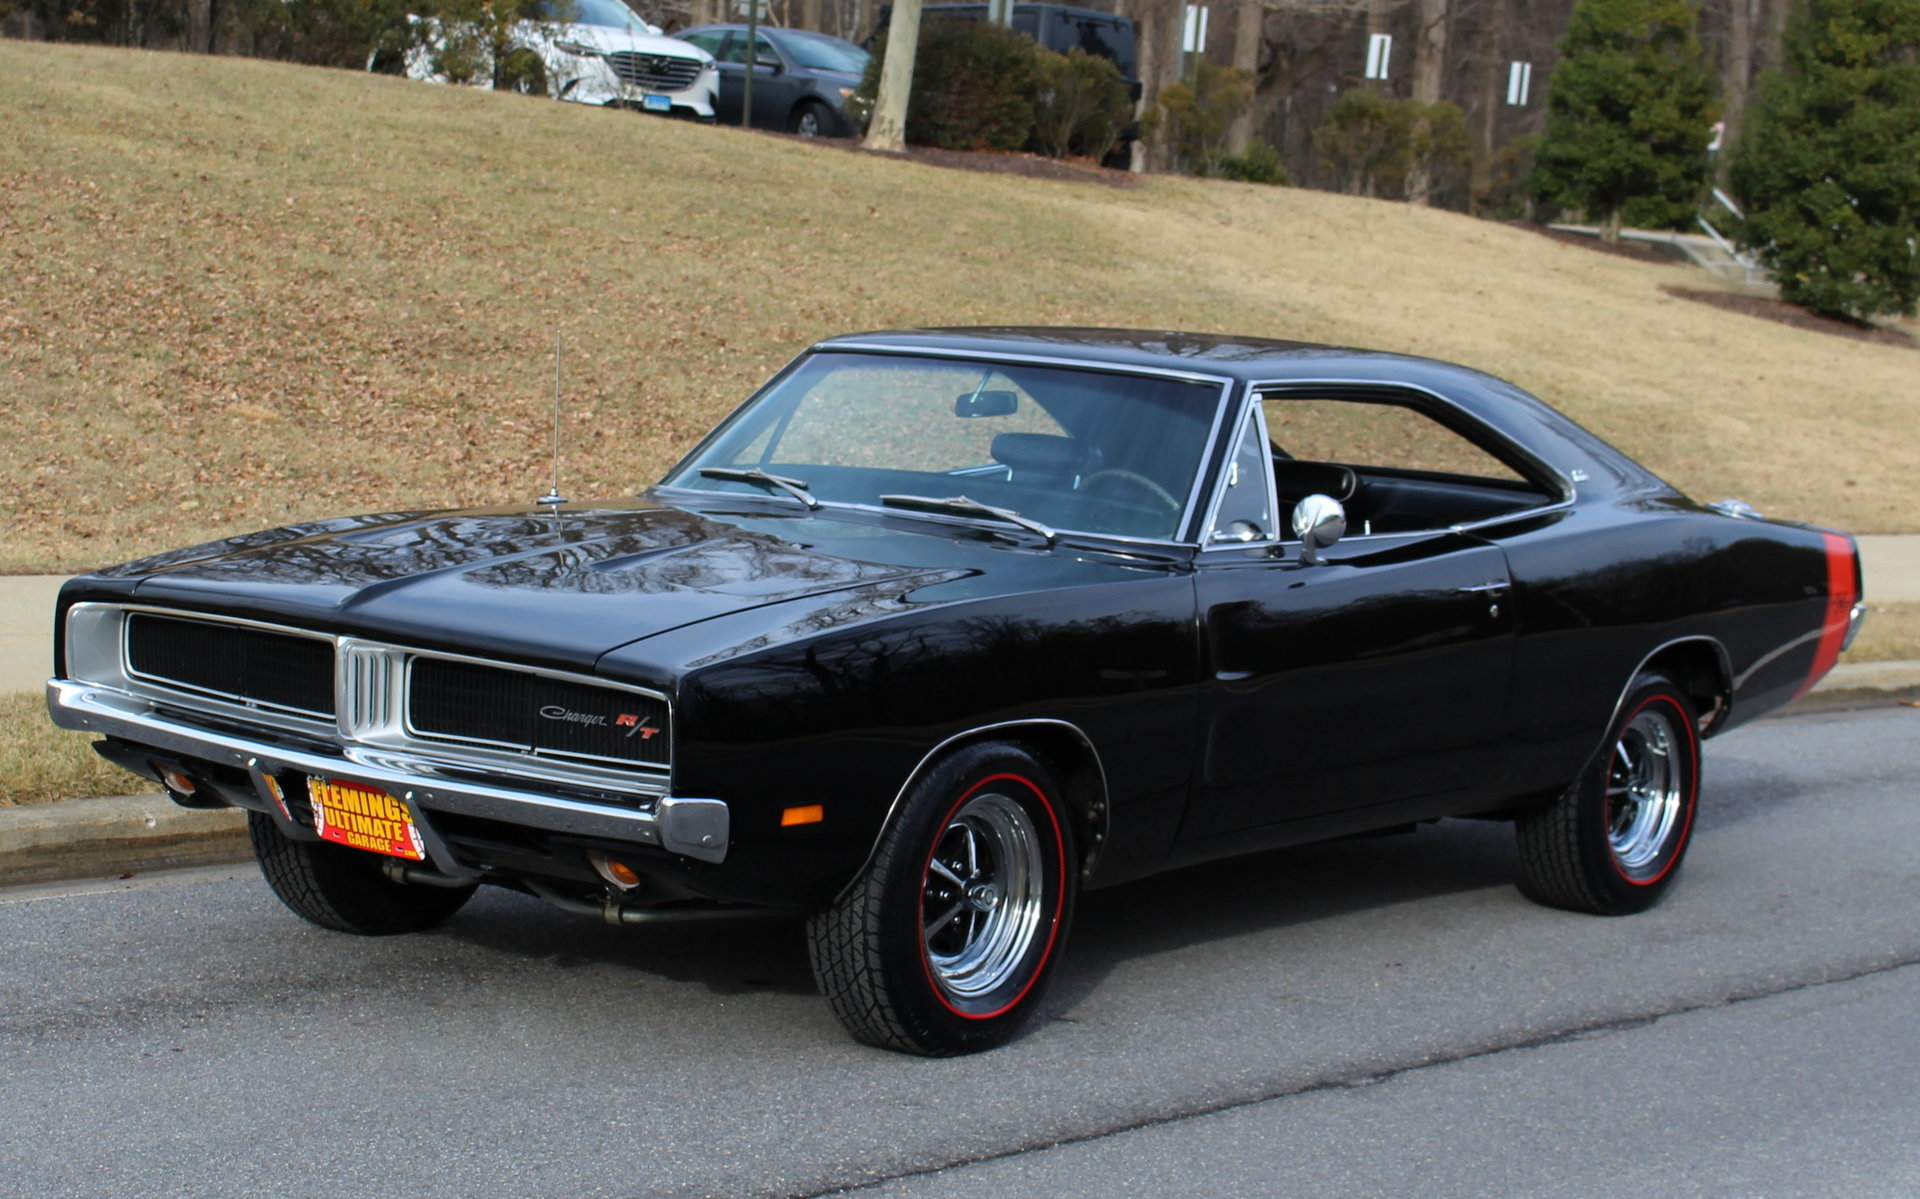 1969 dodge charger 440 r t se r t se for sale 77521 mcg. Black Bedroom Furniture Sets. Home Design Ideas